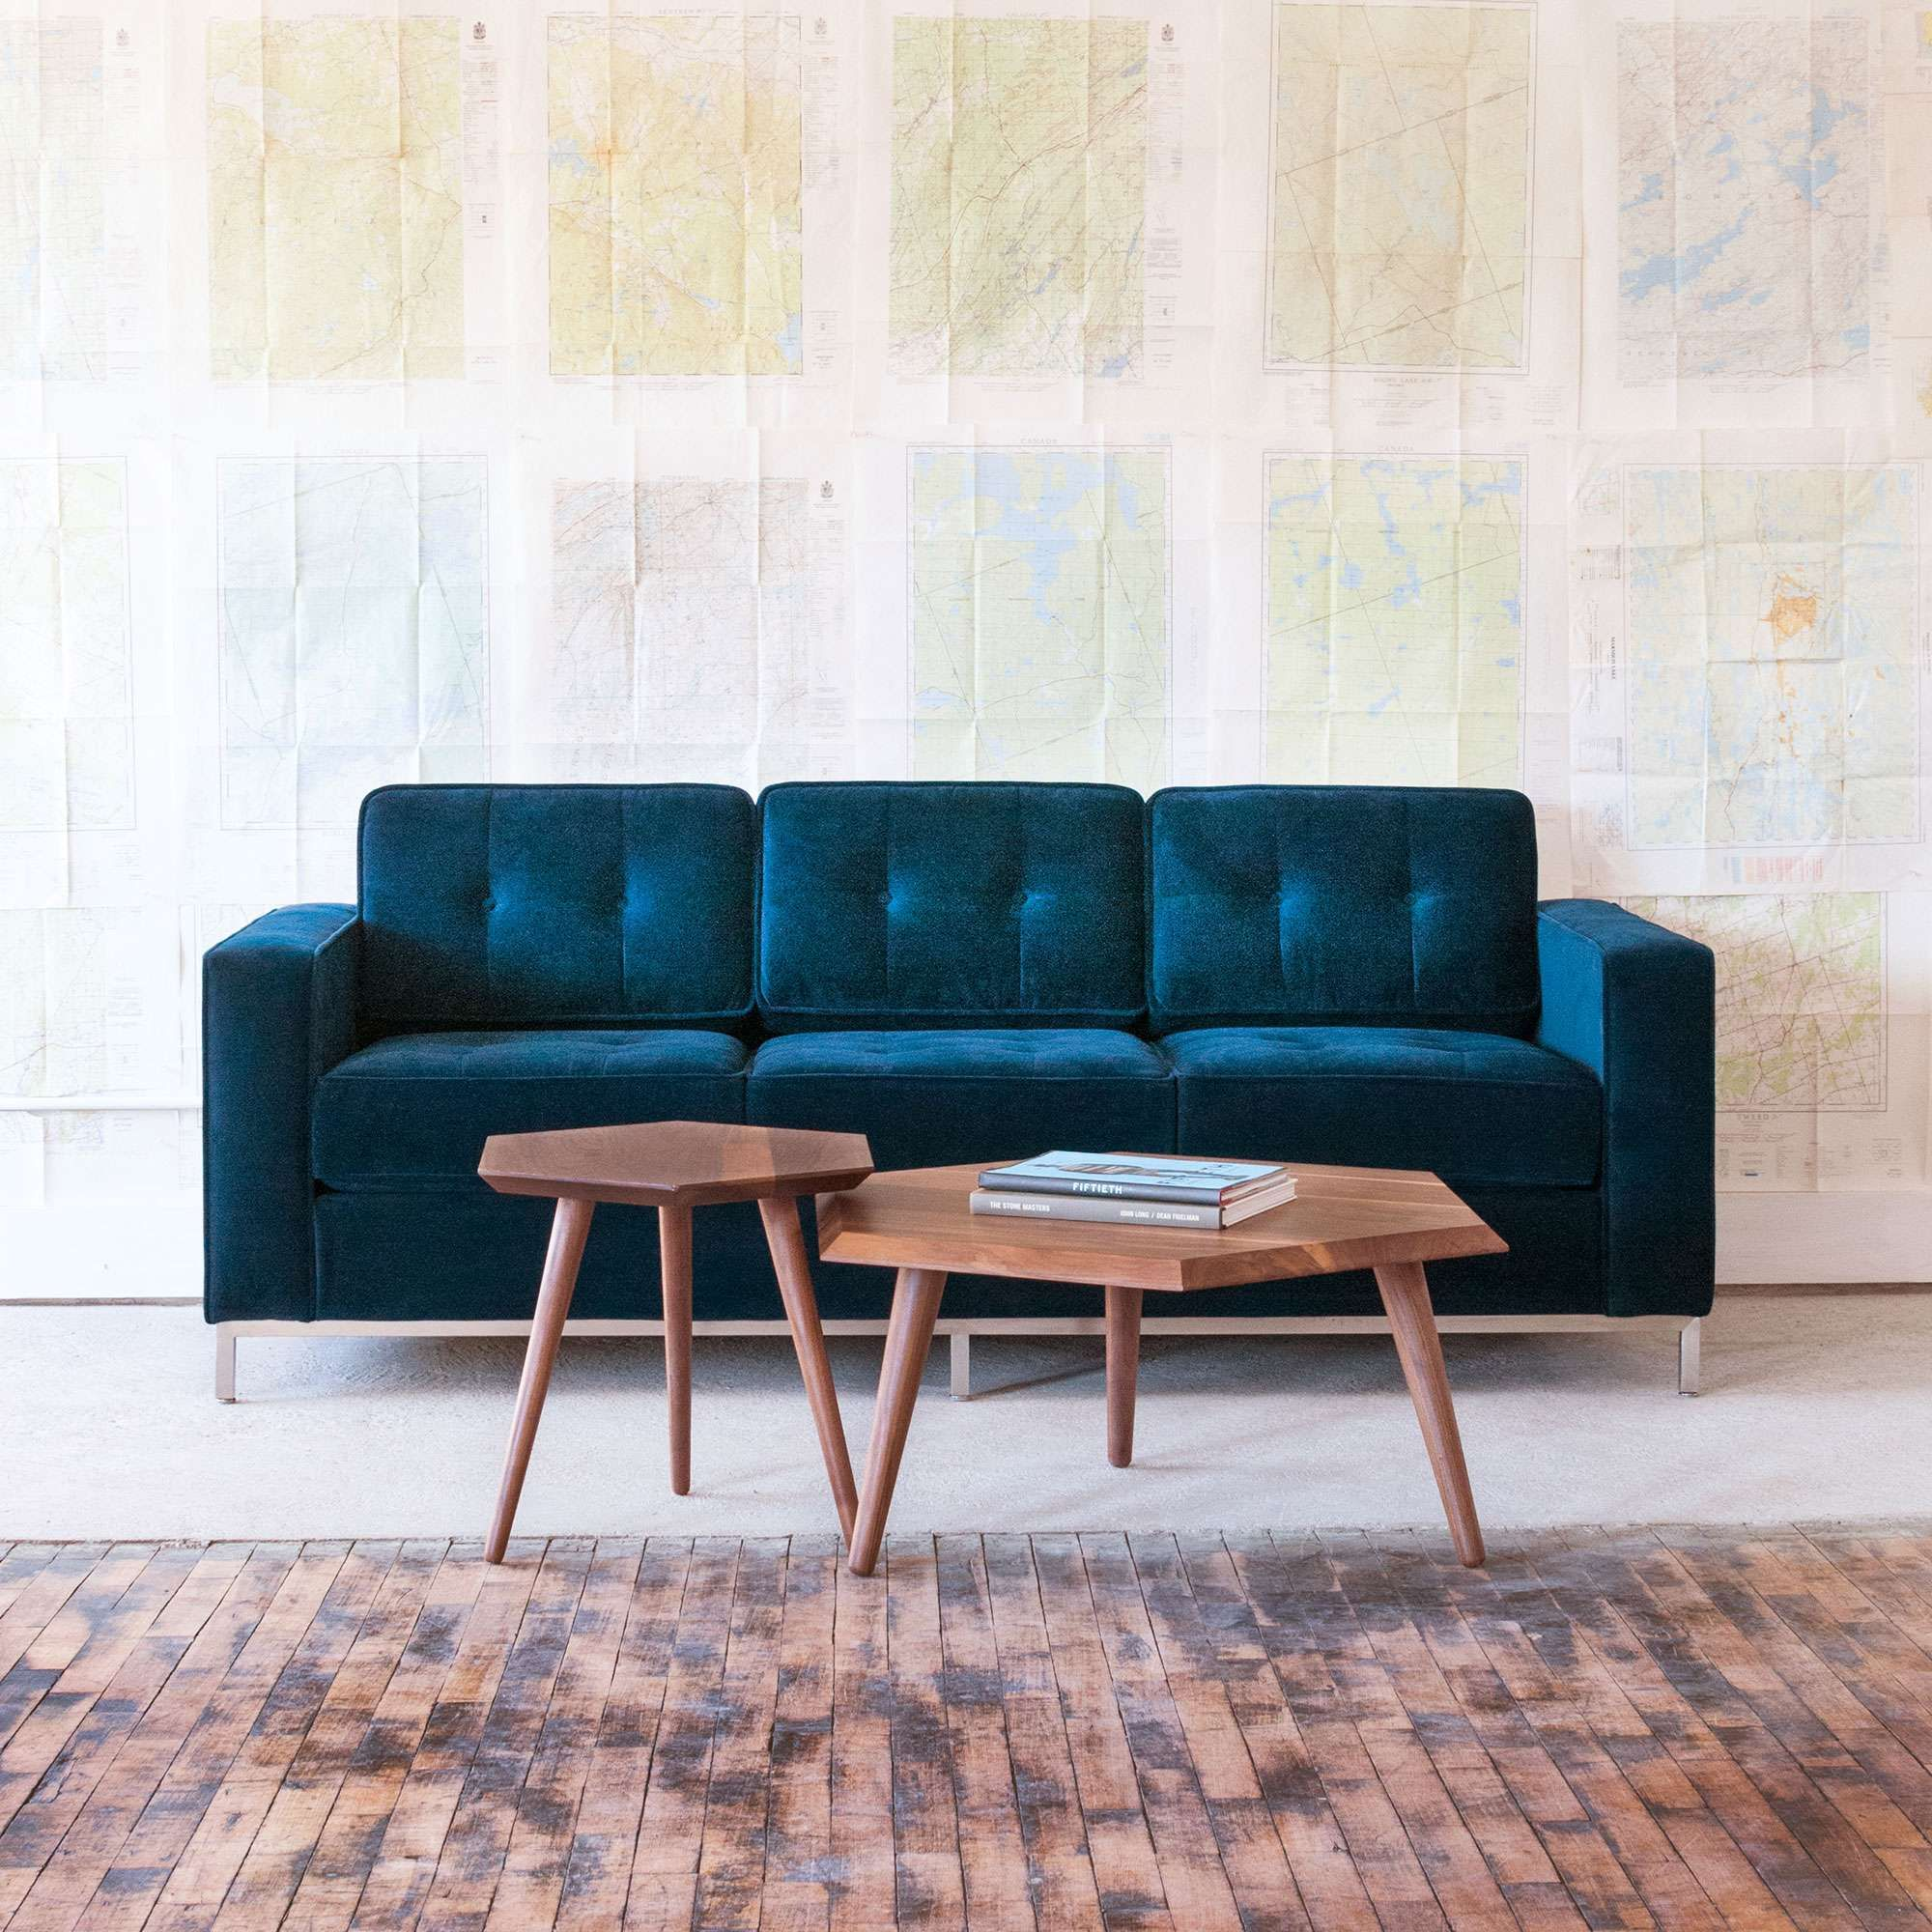 paola navone ghost sofa - Google Search | Product / Sofa | Pinterest